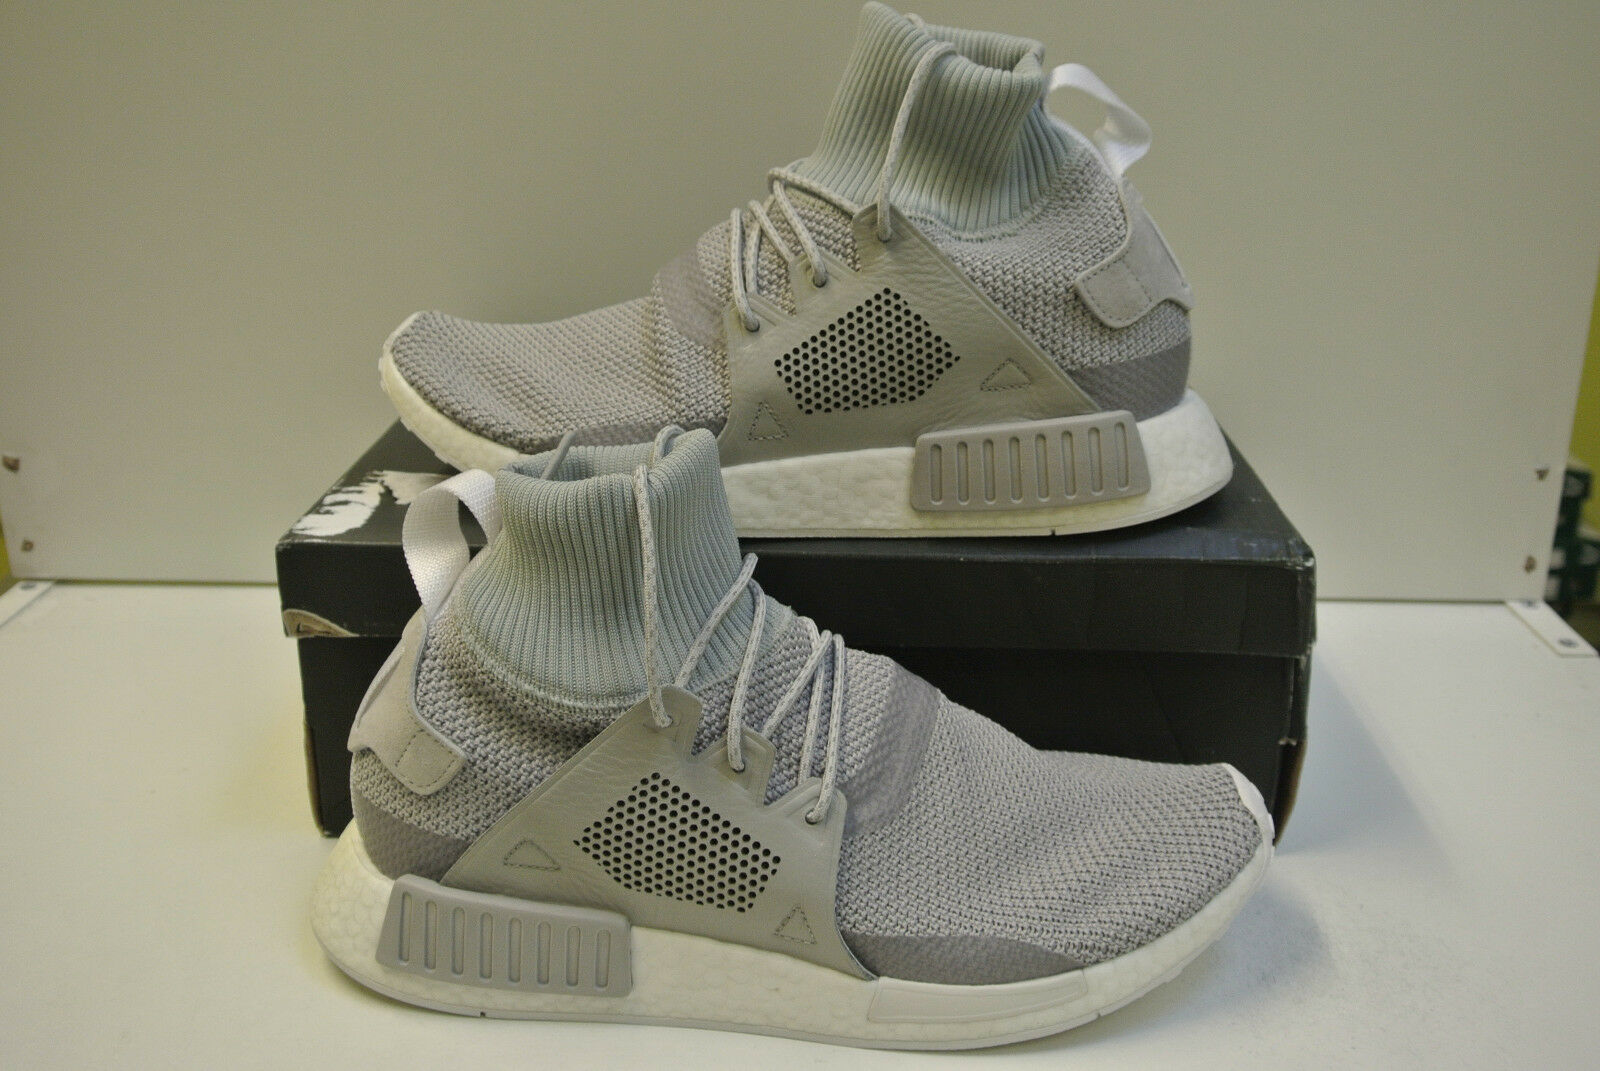 Adidas NMD_R1 Winter Size Selectable New & Orig Pack bz0633